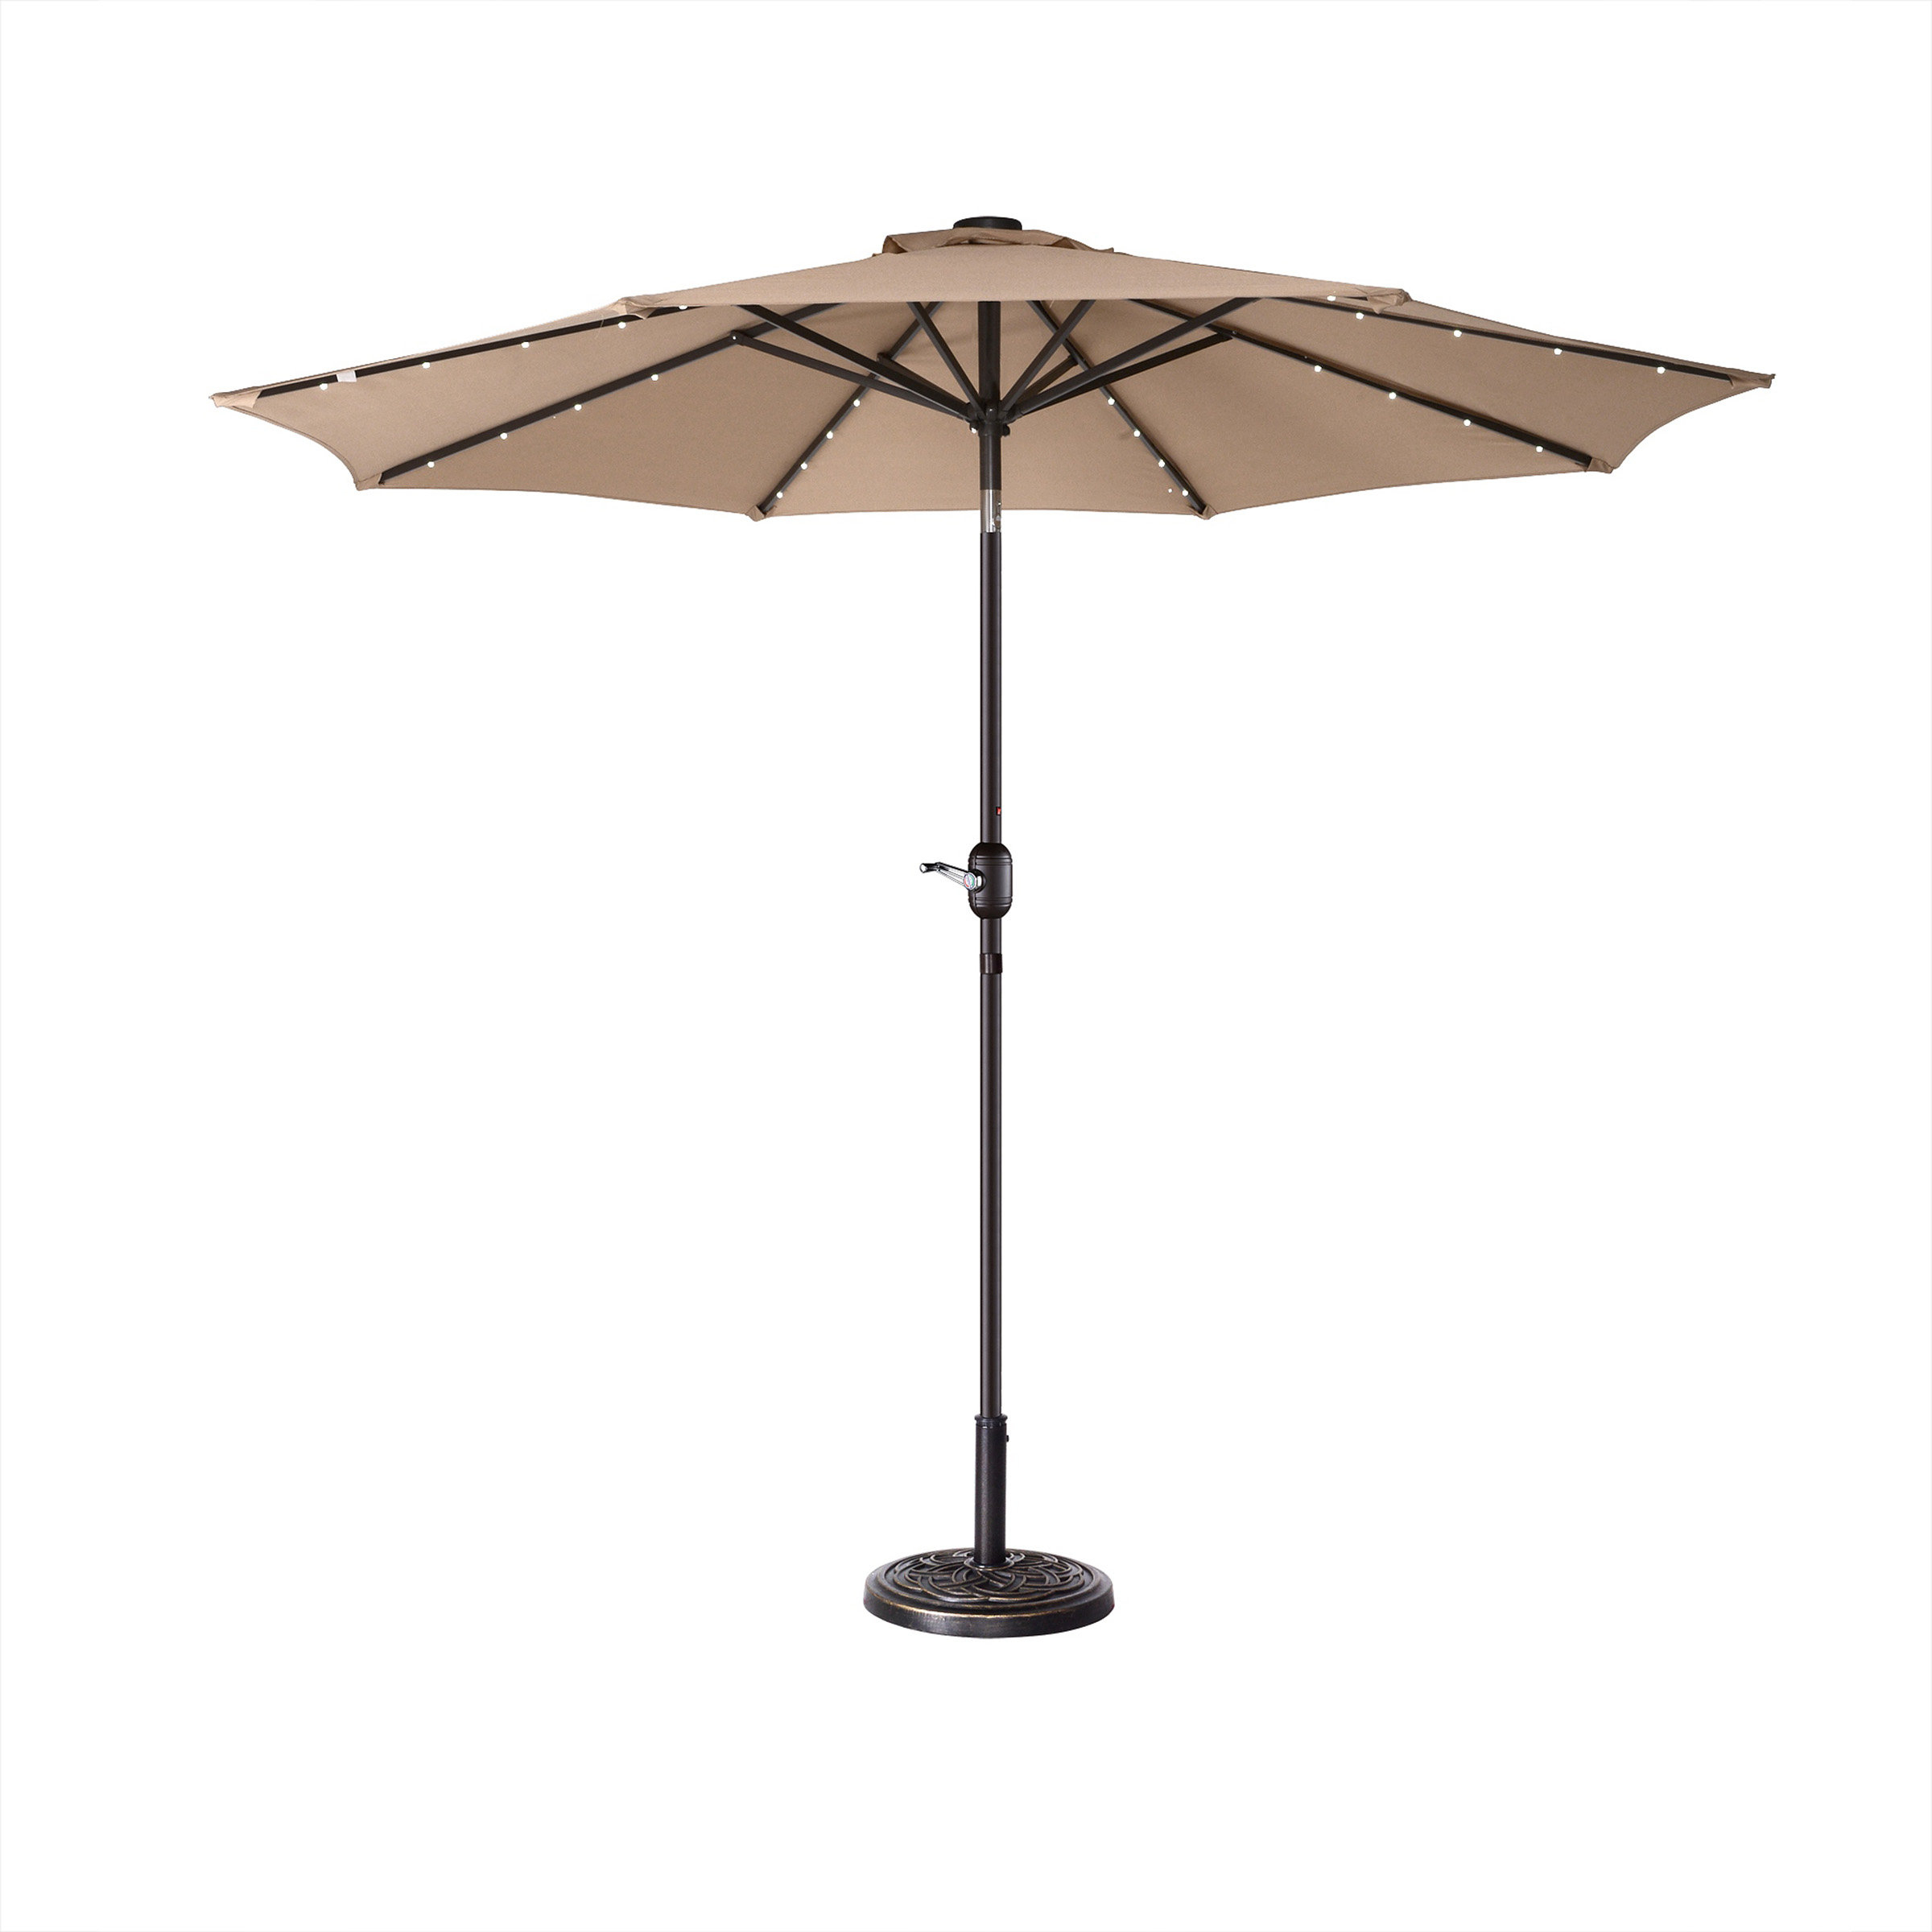 Fashionable Colburn Half Market Umbrellas Pertaining To Coggeshall Led Lighted 9' Market Umbrella (View 13 of 20)